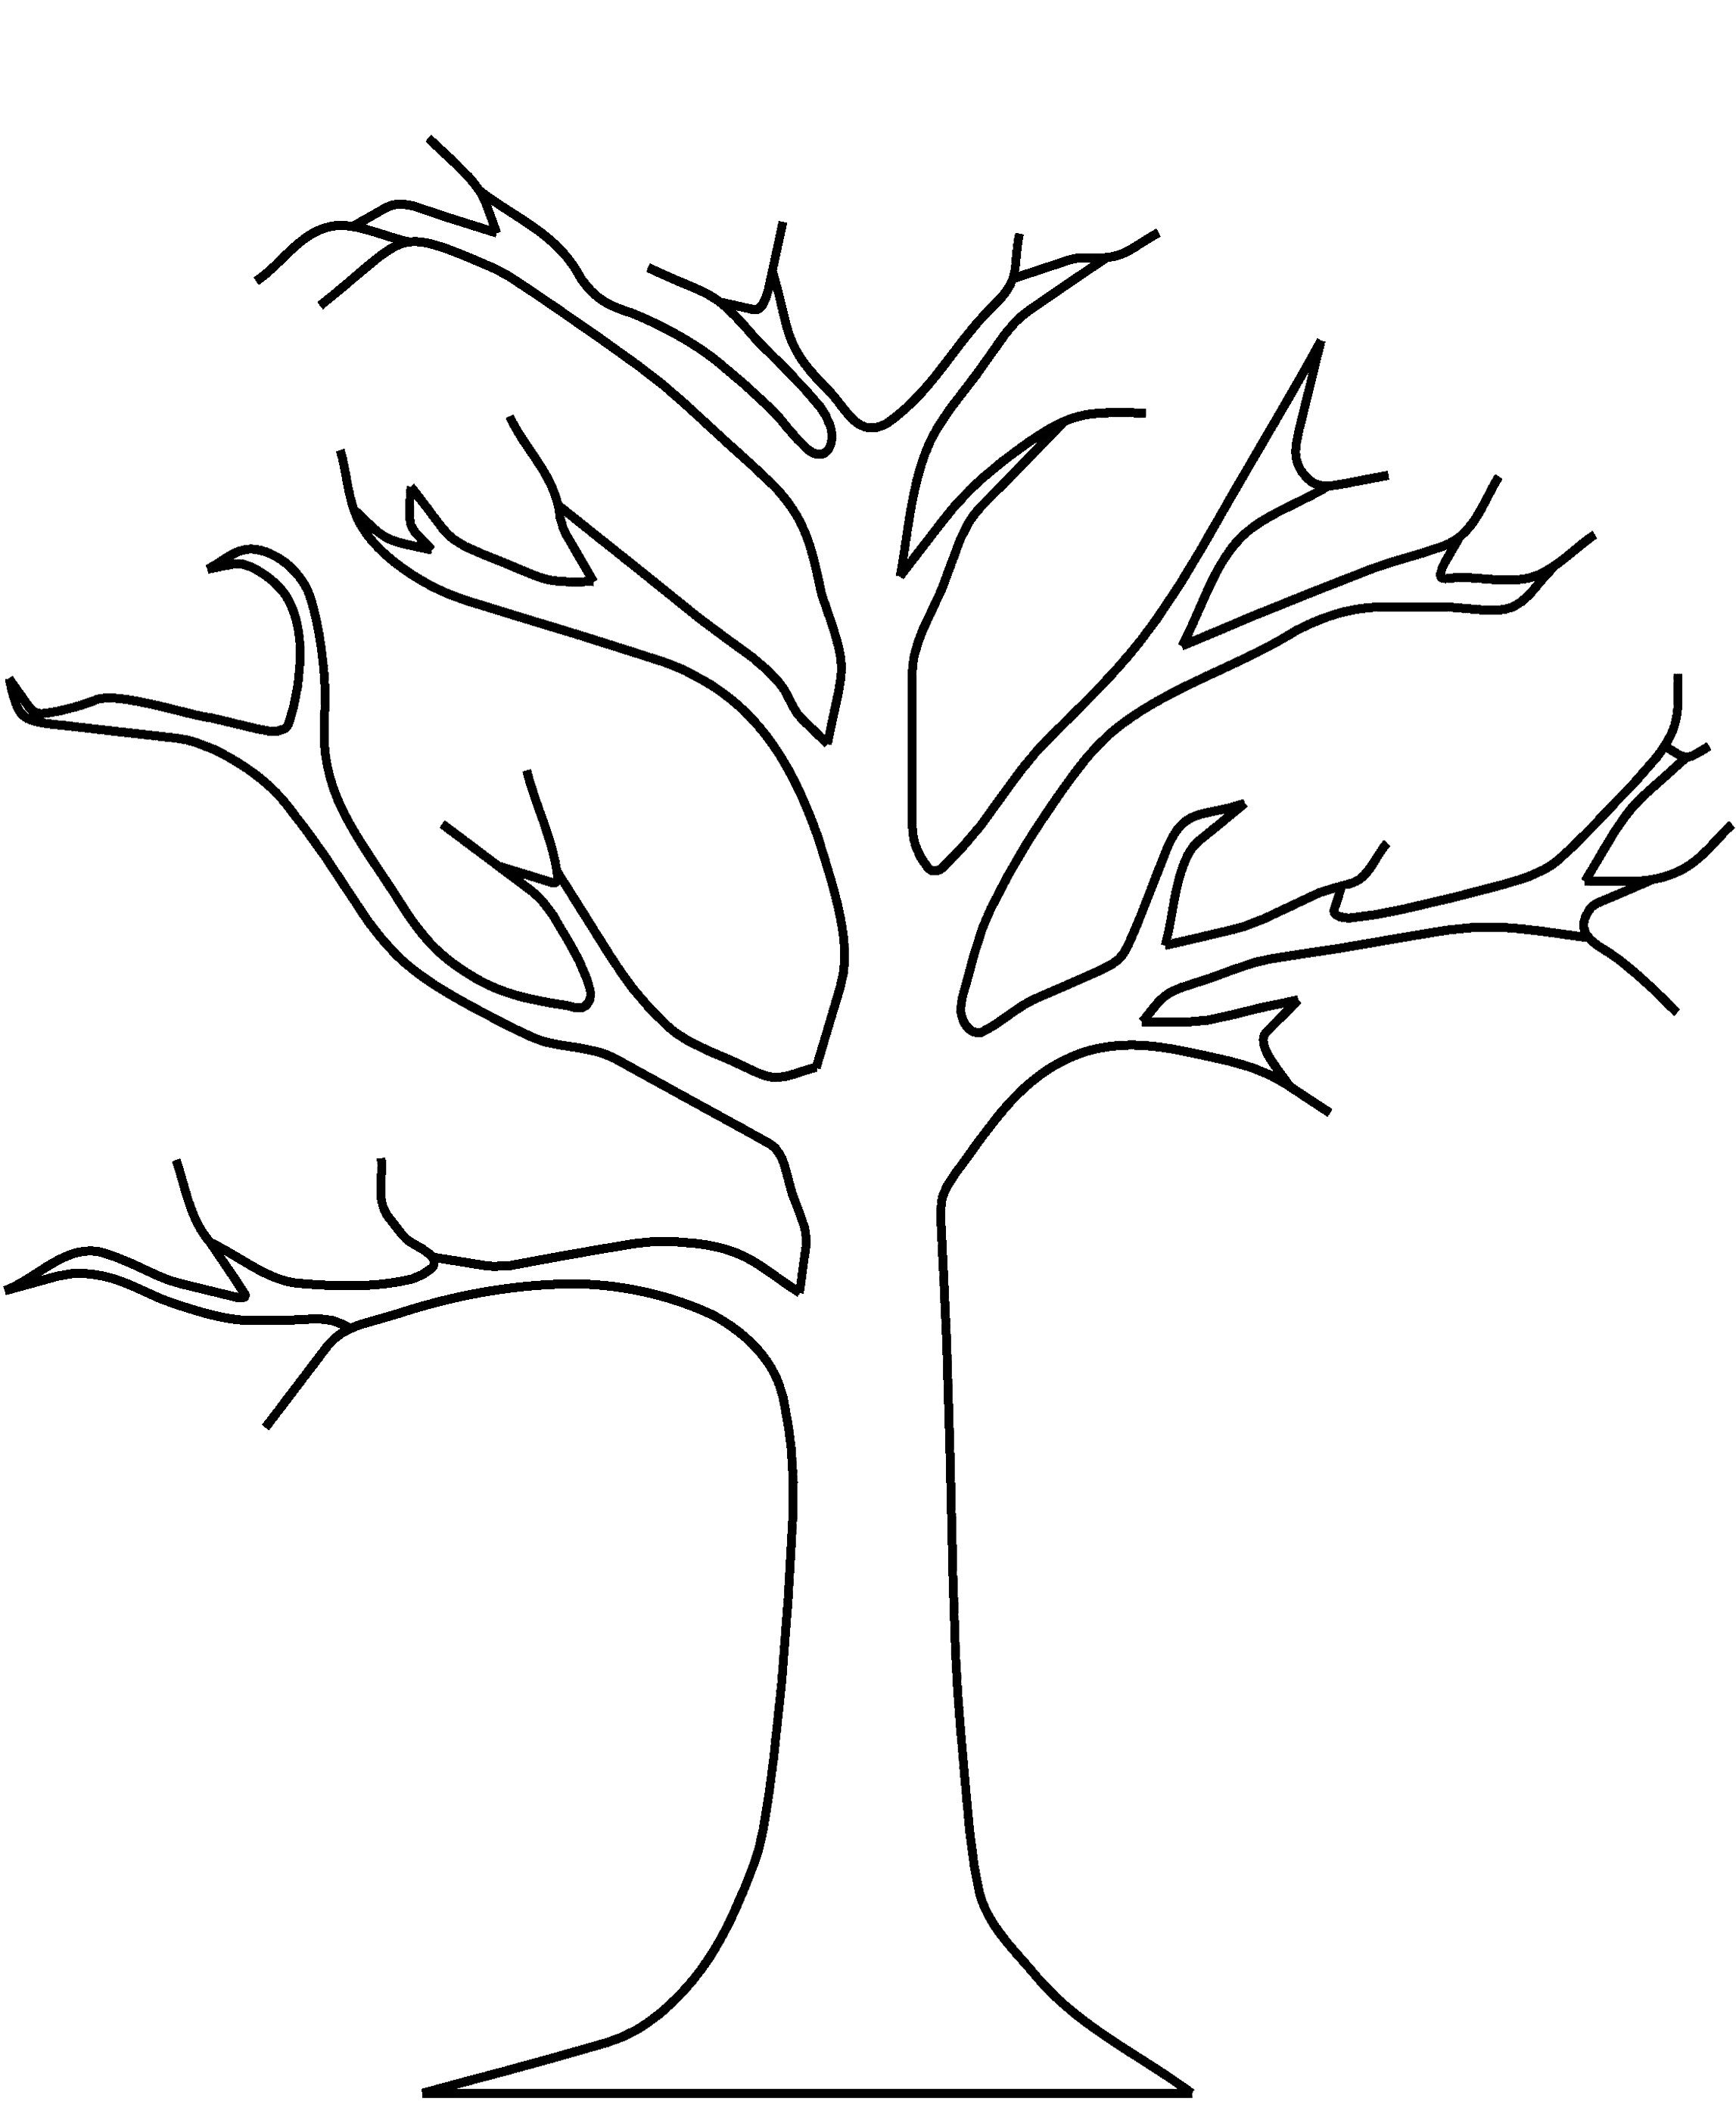 Apple Tree Without Leaves Coloring Pages Okulöncesi Boyama Sayfaları